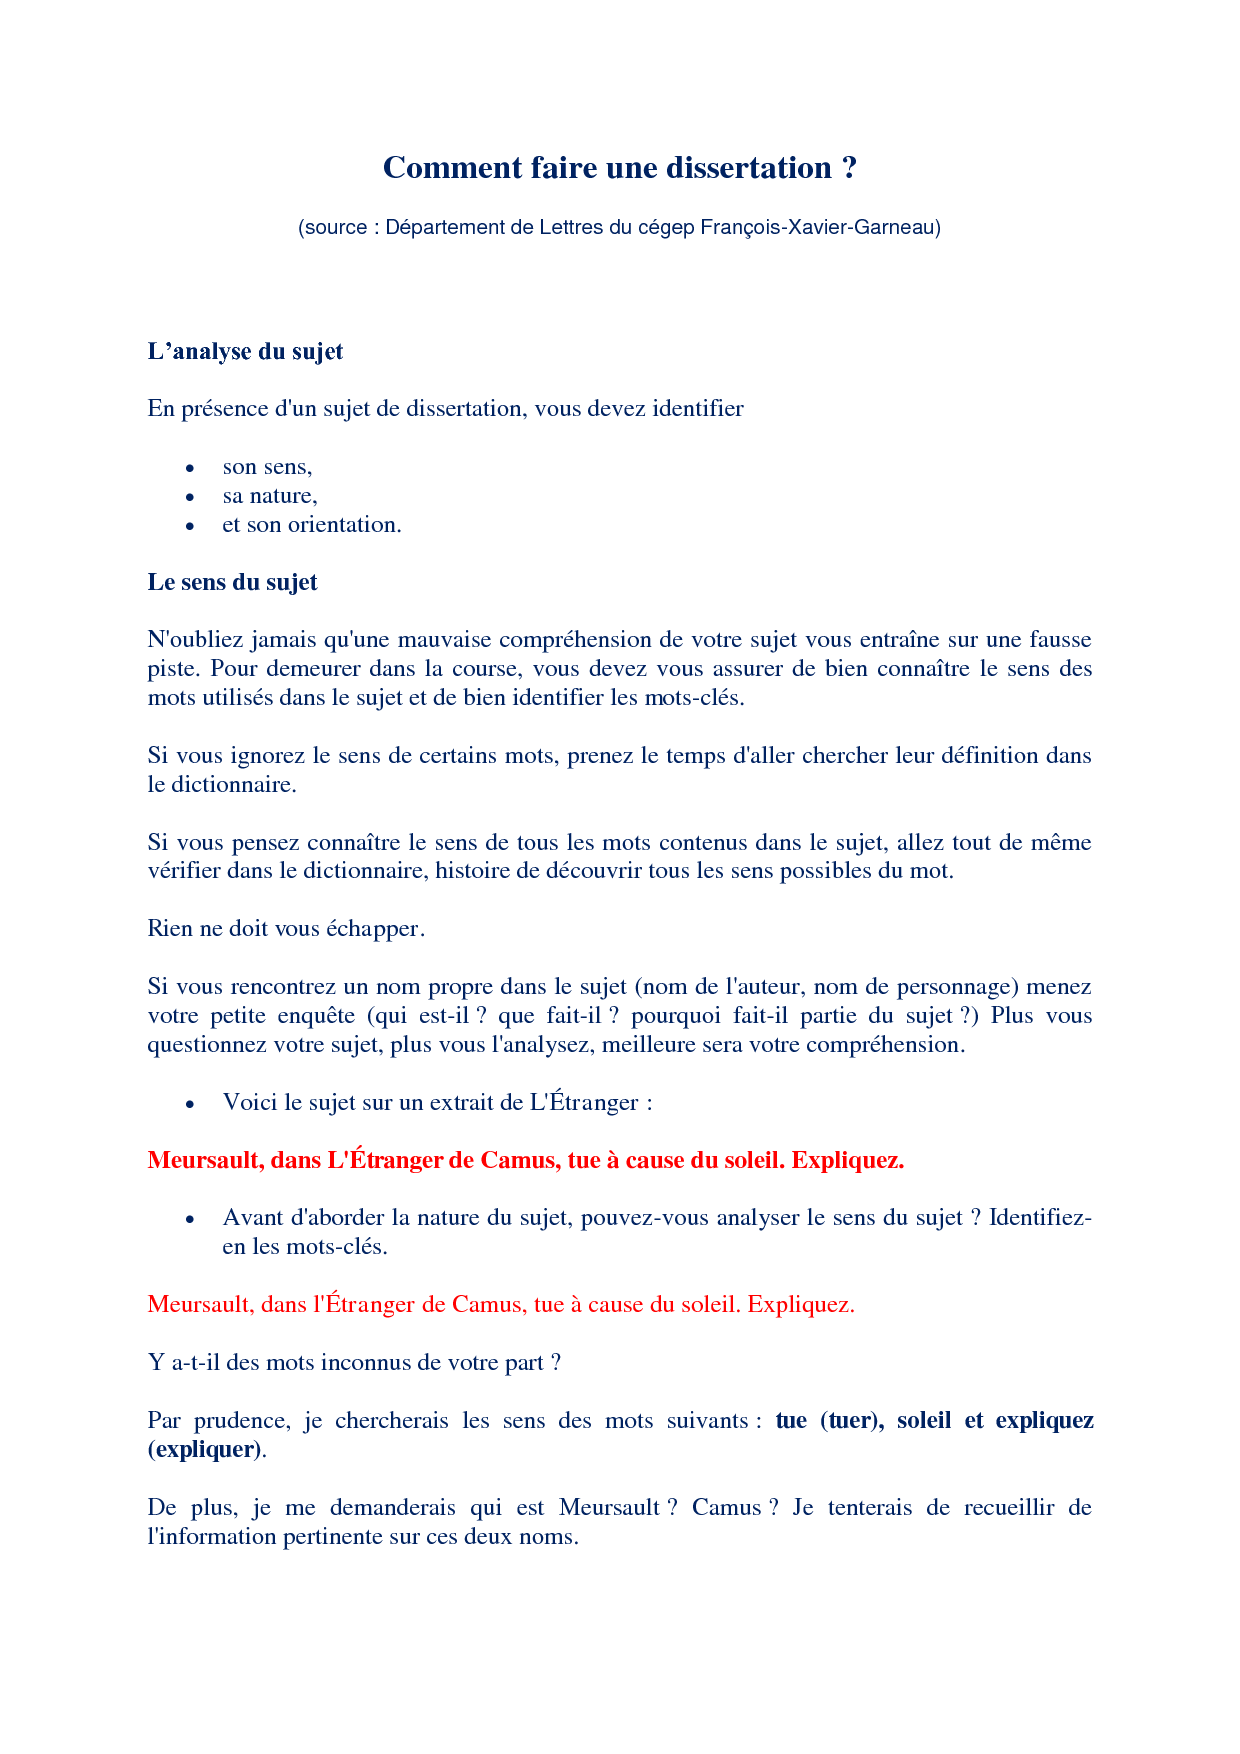 Comment faire un plan de dissertation en franais